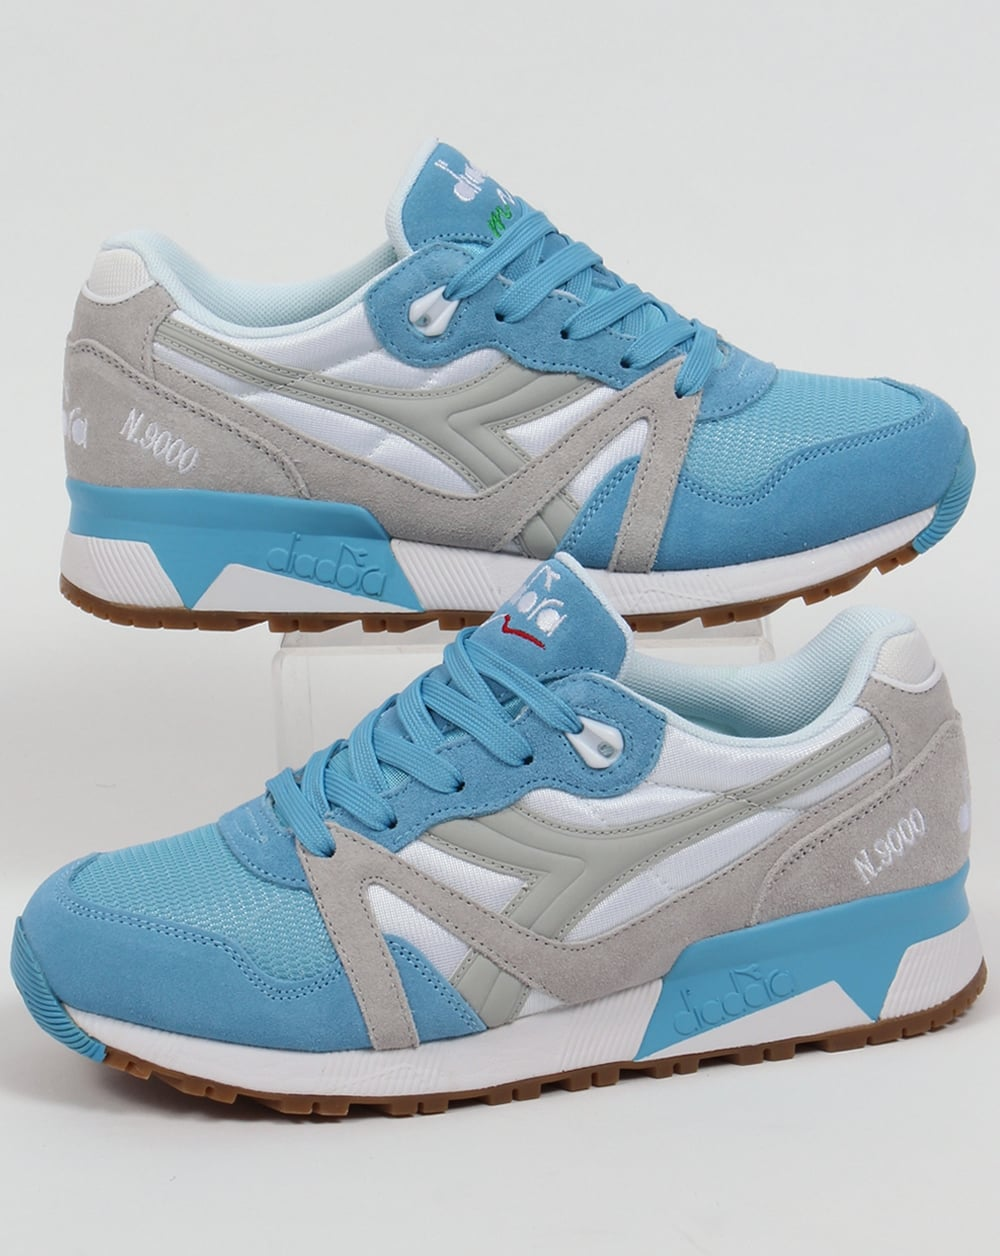 Diadora N9000 NYL Trainers Blue Grotto/Lunar Rock .shoes.sneakers.mens